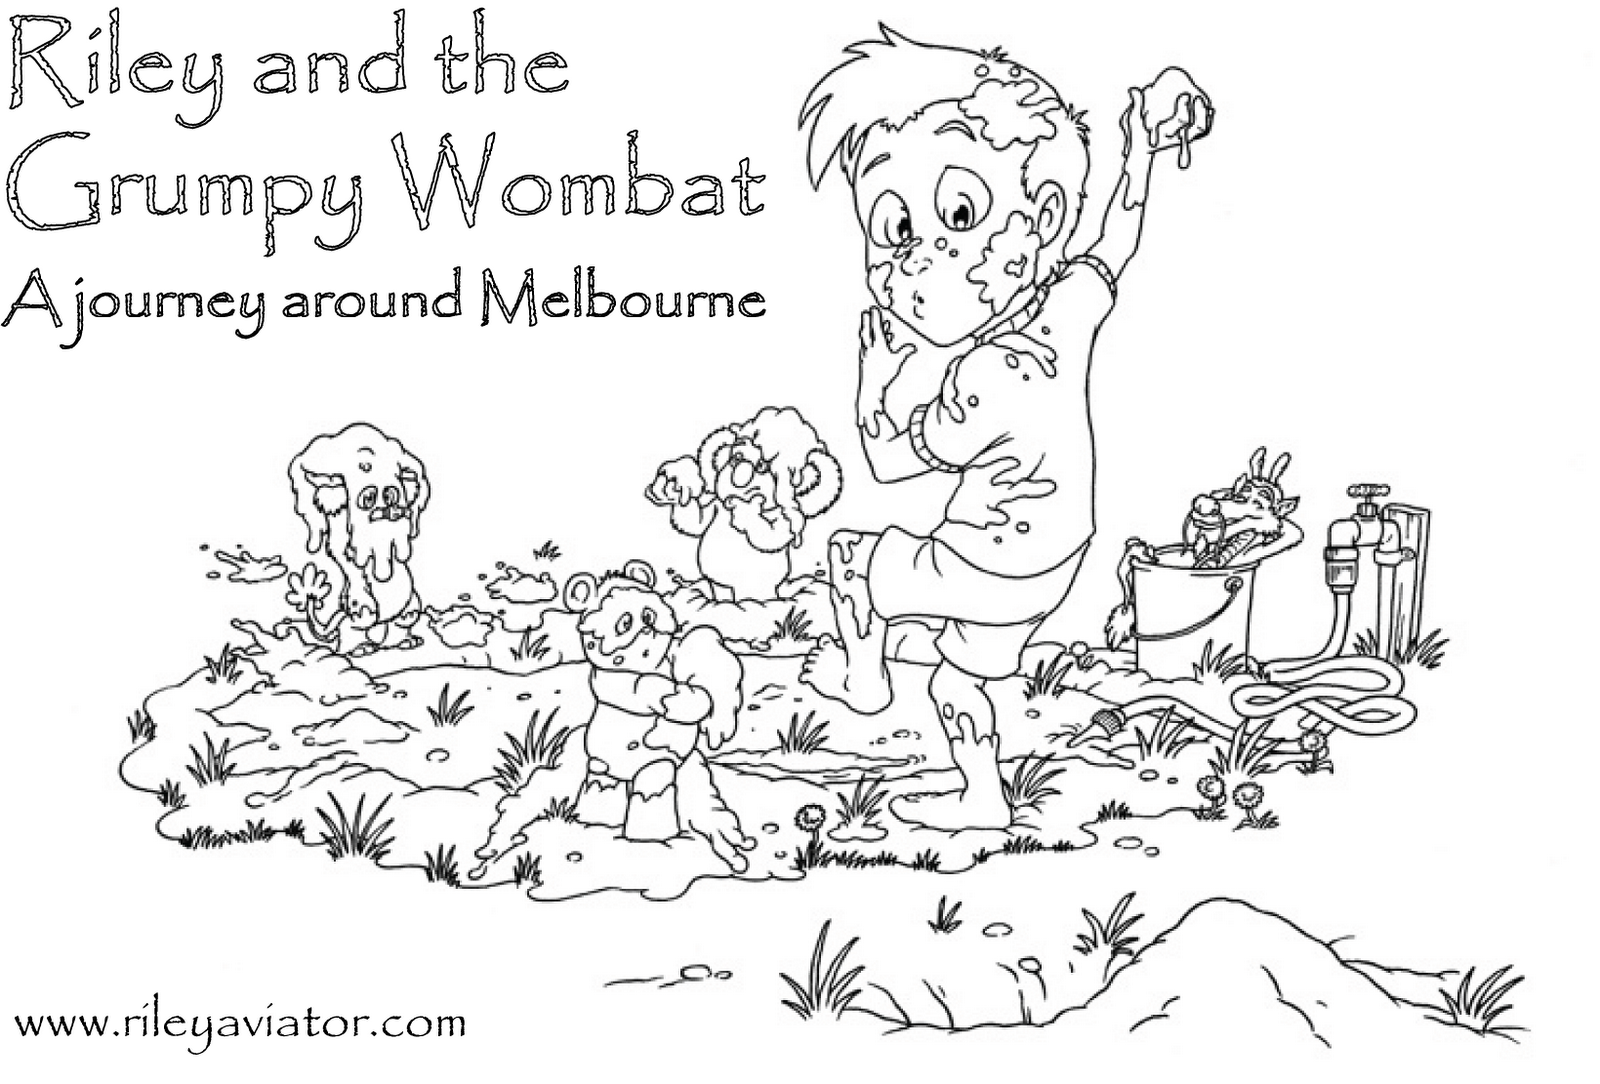 do you simply adore grumpy wombats heres your chance to win a very special very grumpy prize all you need do is click on the colouring page